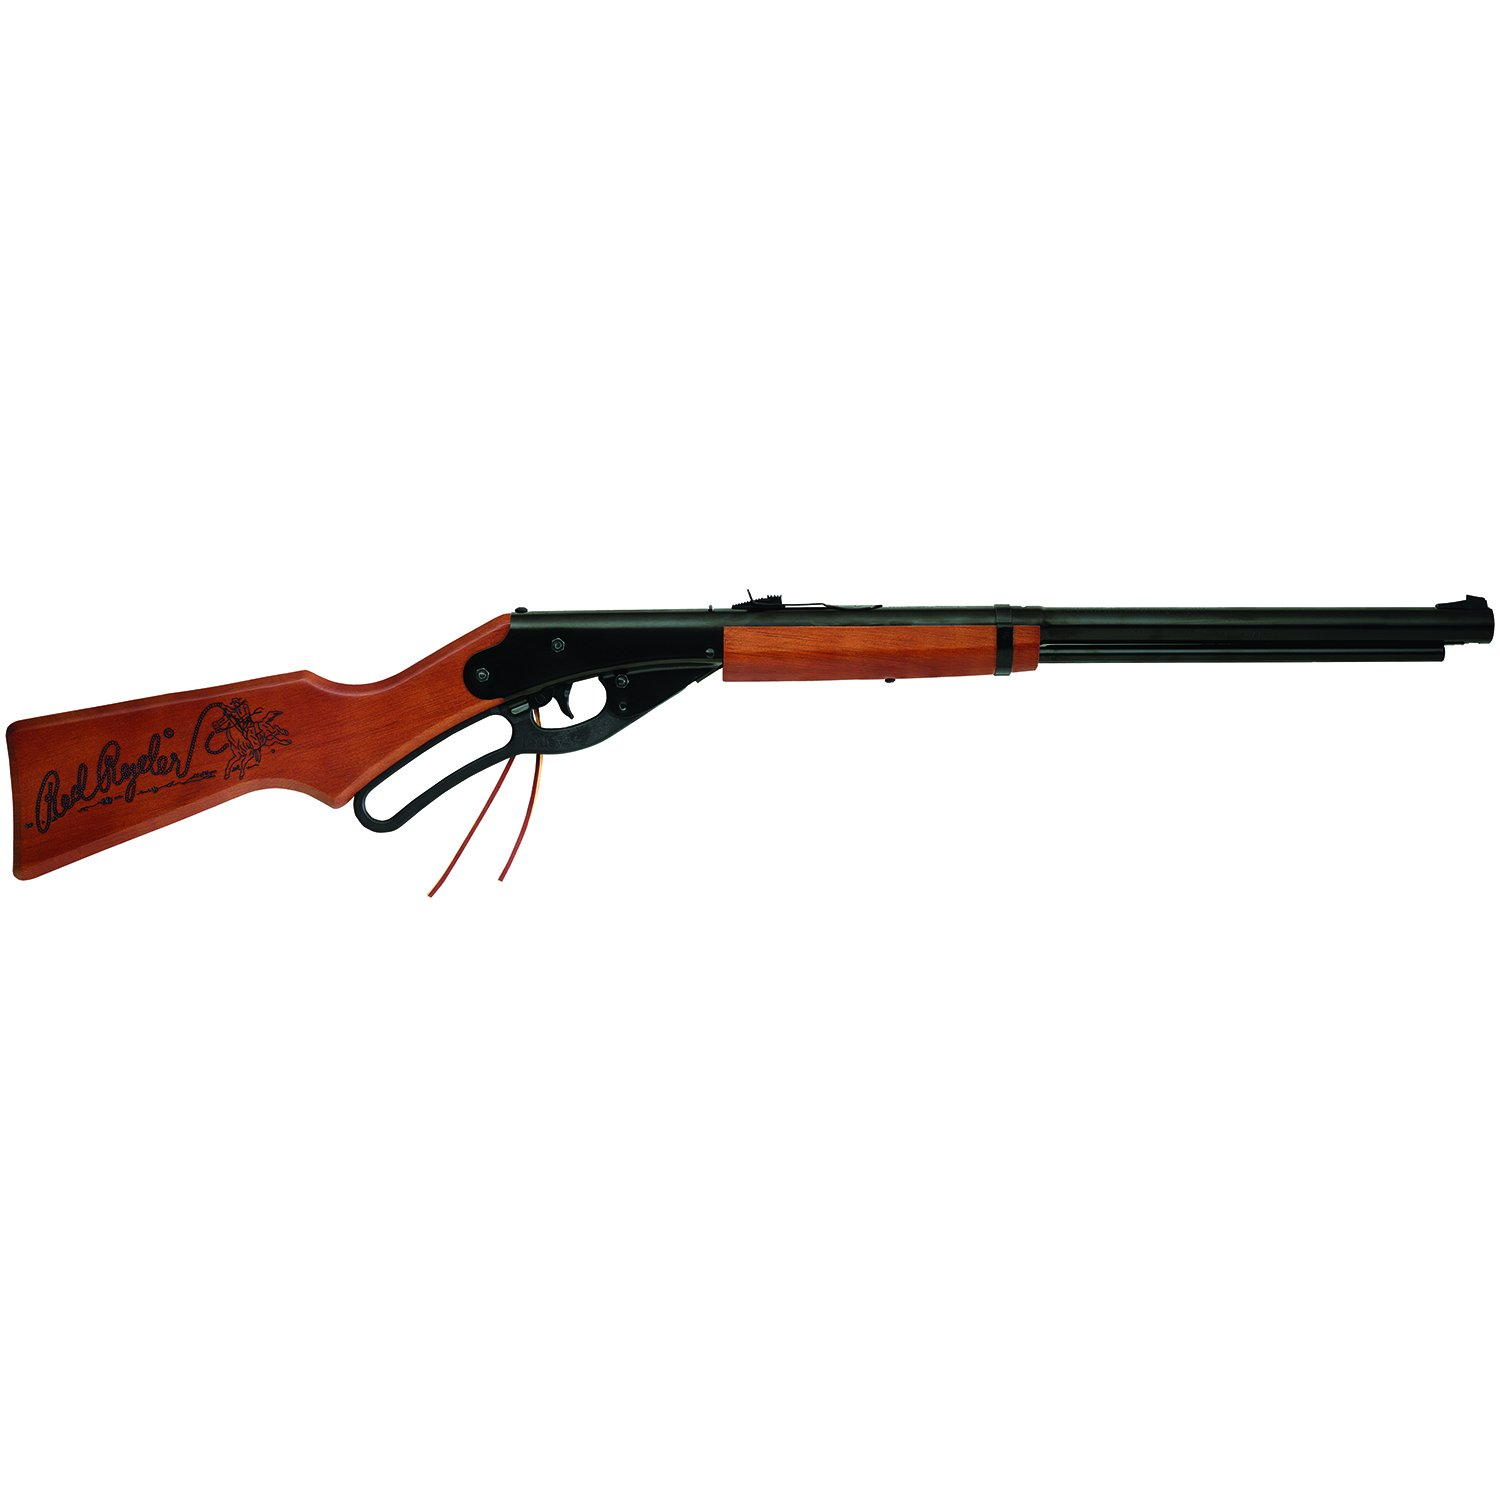 Daisy Outdoor Products Model 1938 Red Ryder BB Gun